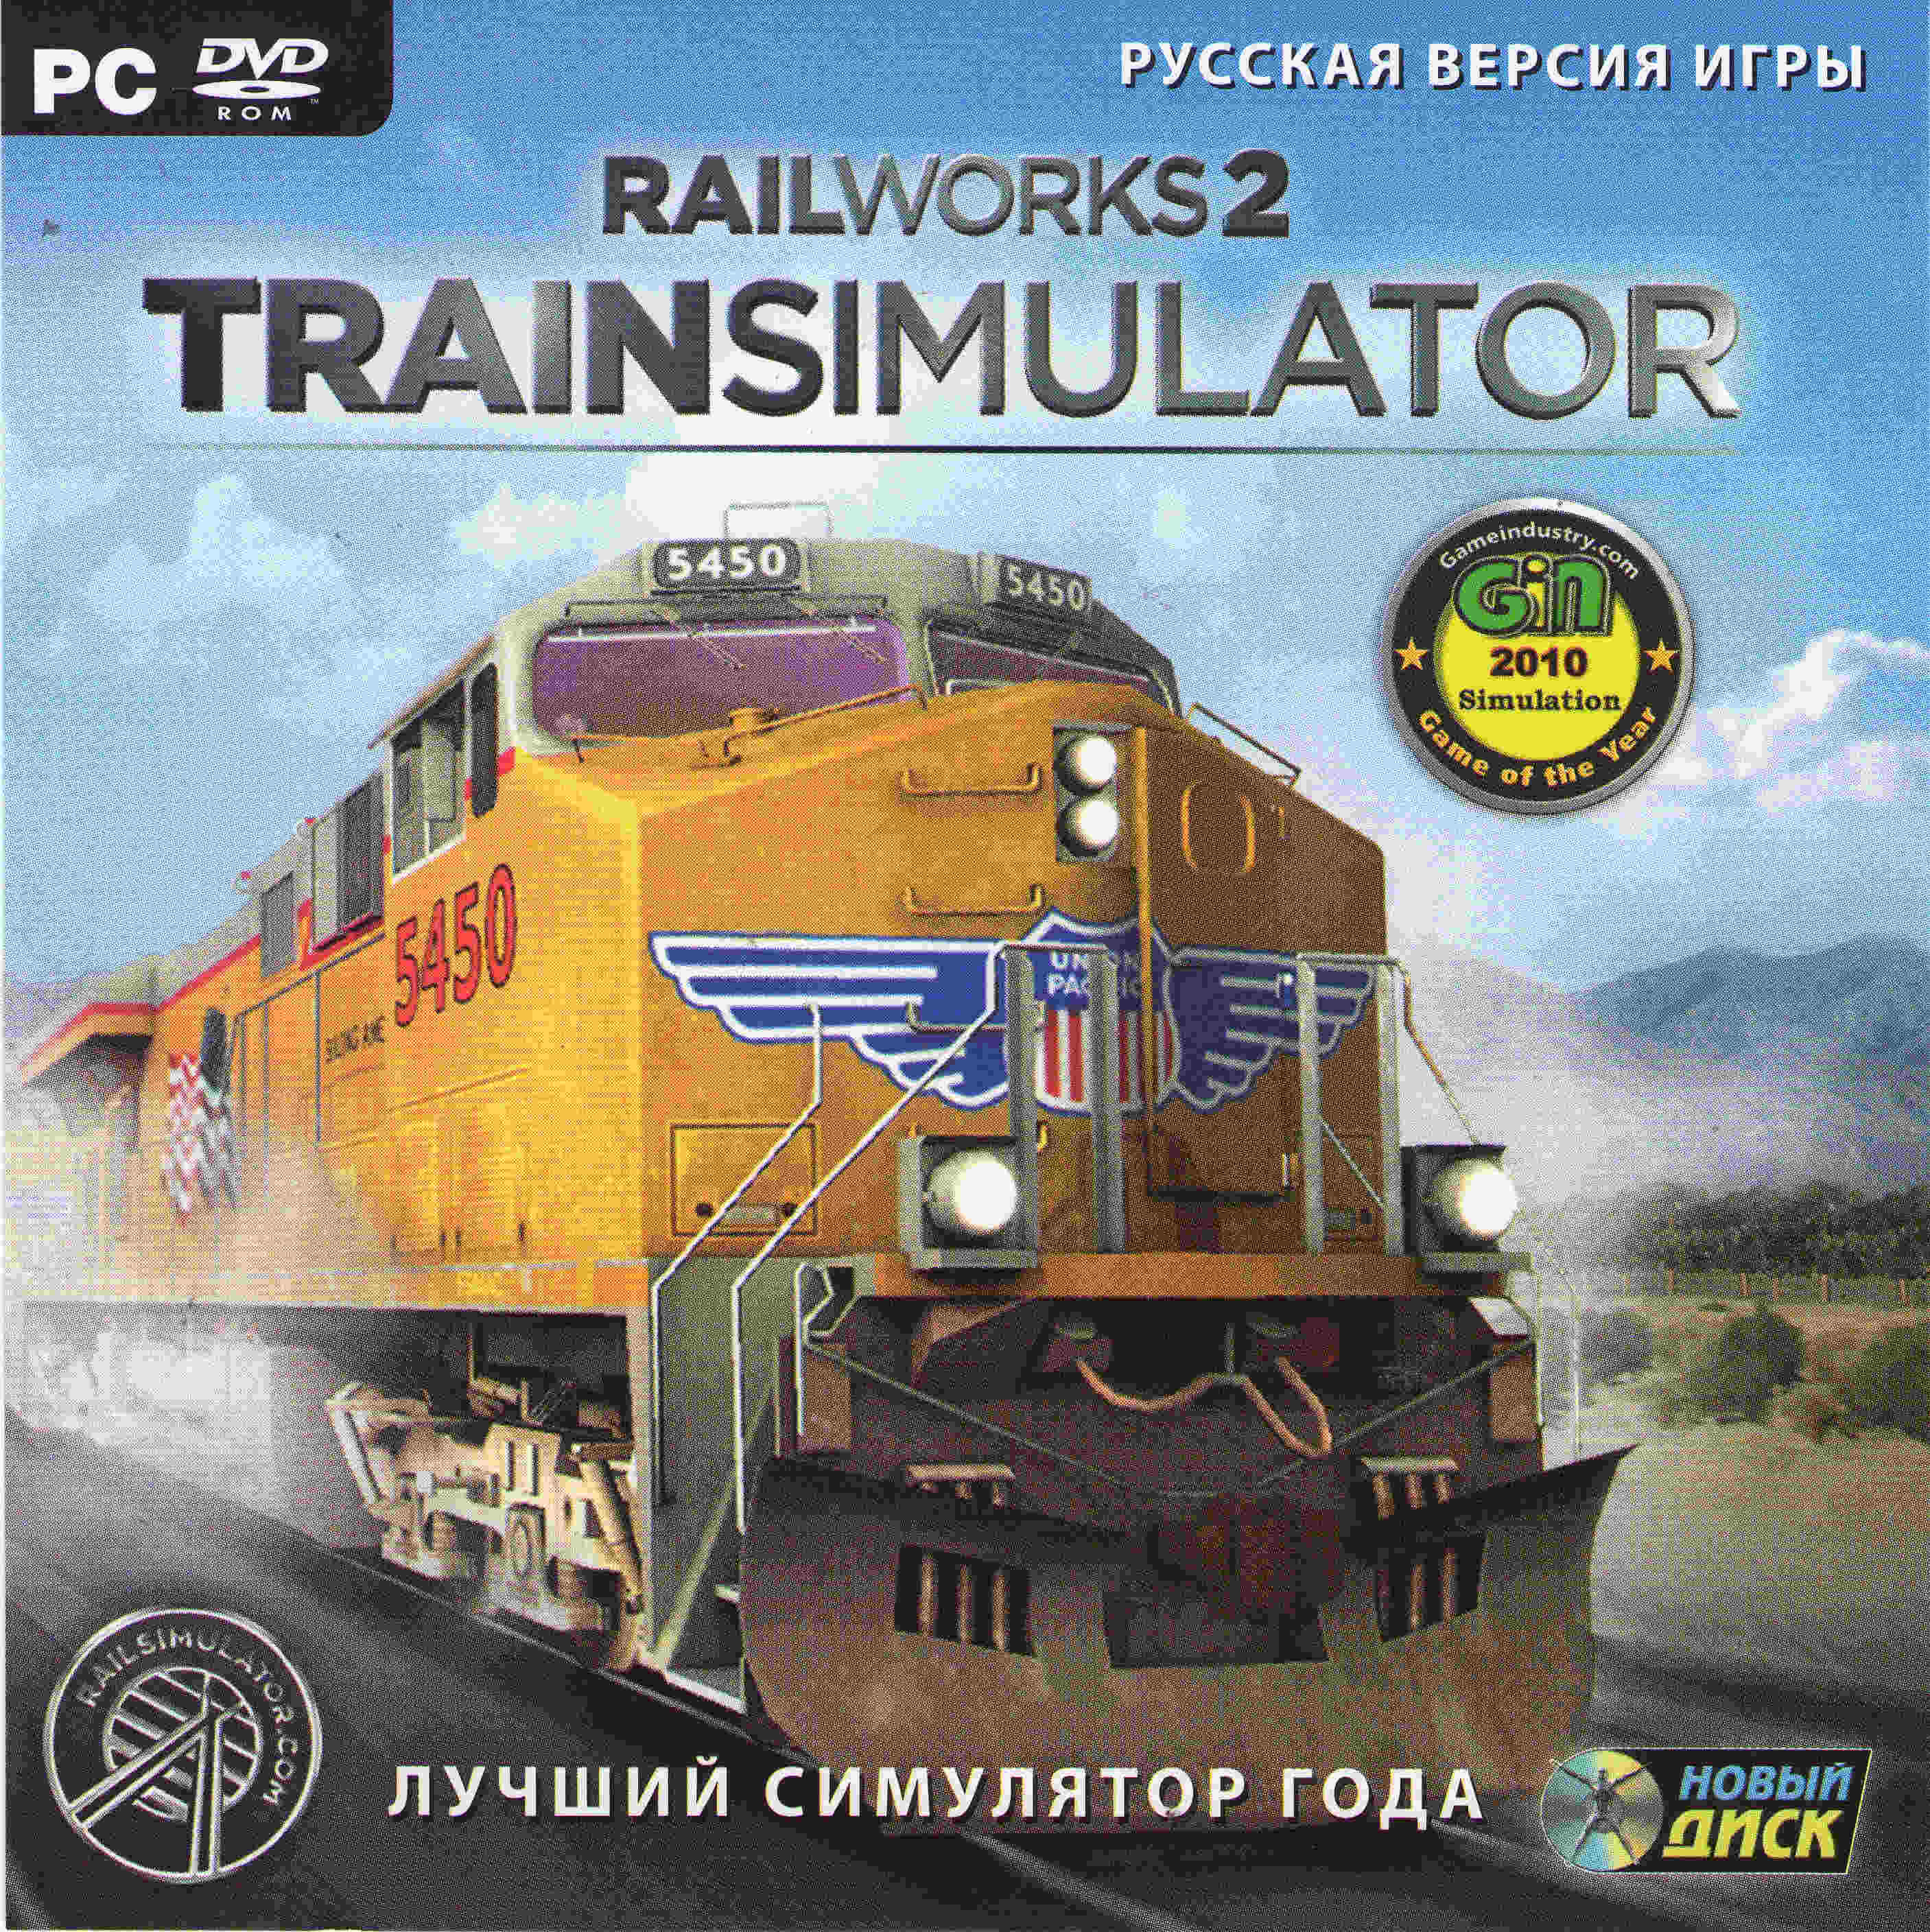 RailWorks 2 Train Simulator [Railworks 3] (Steam)